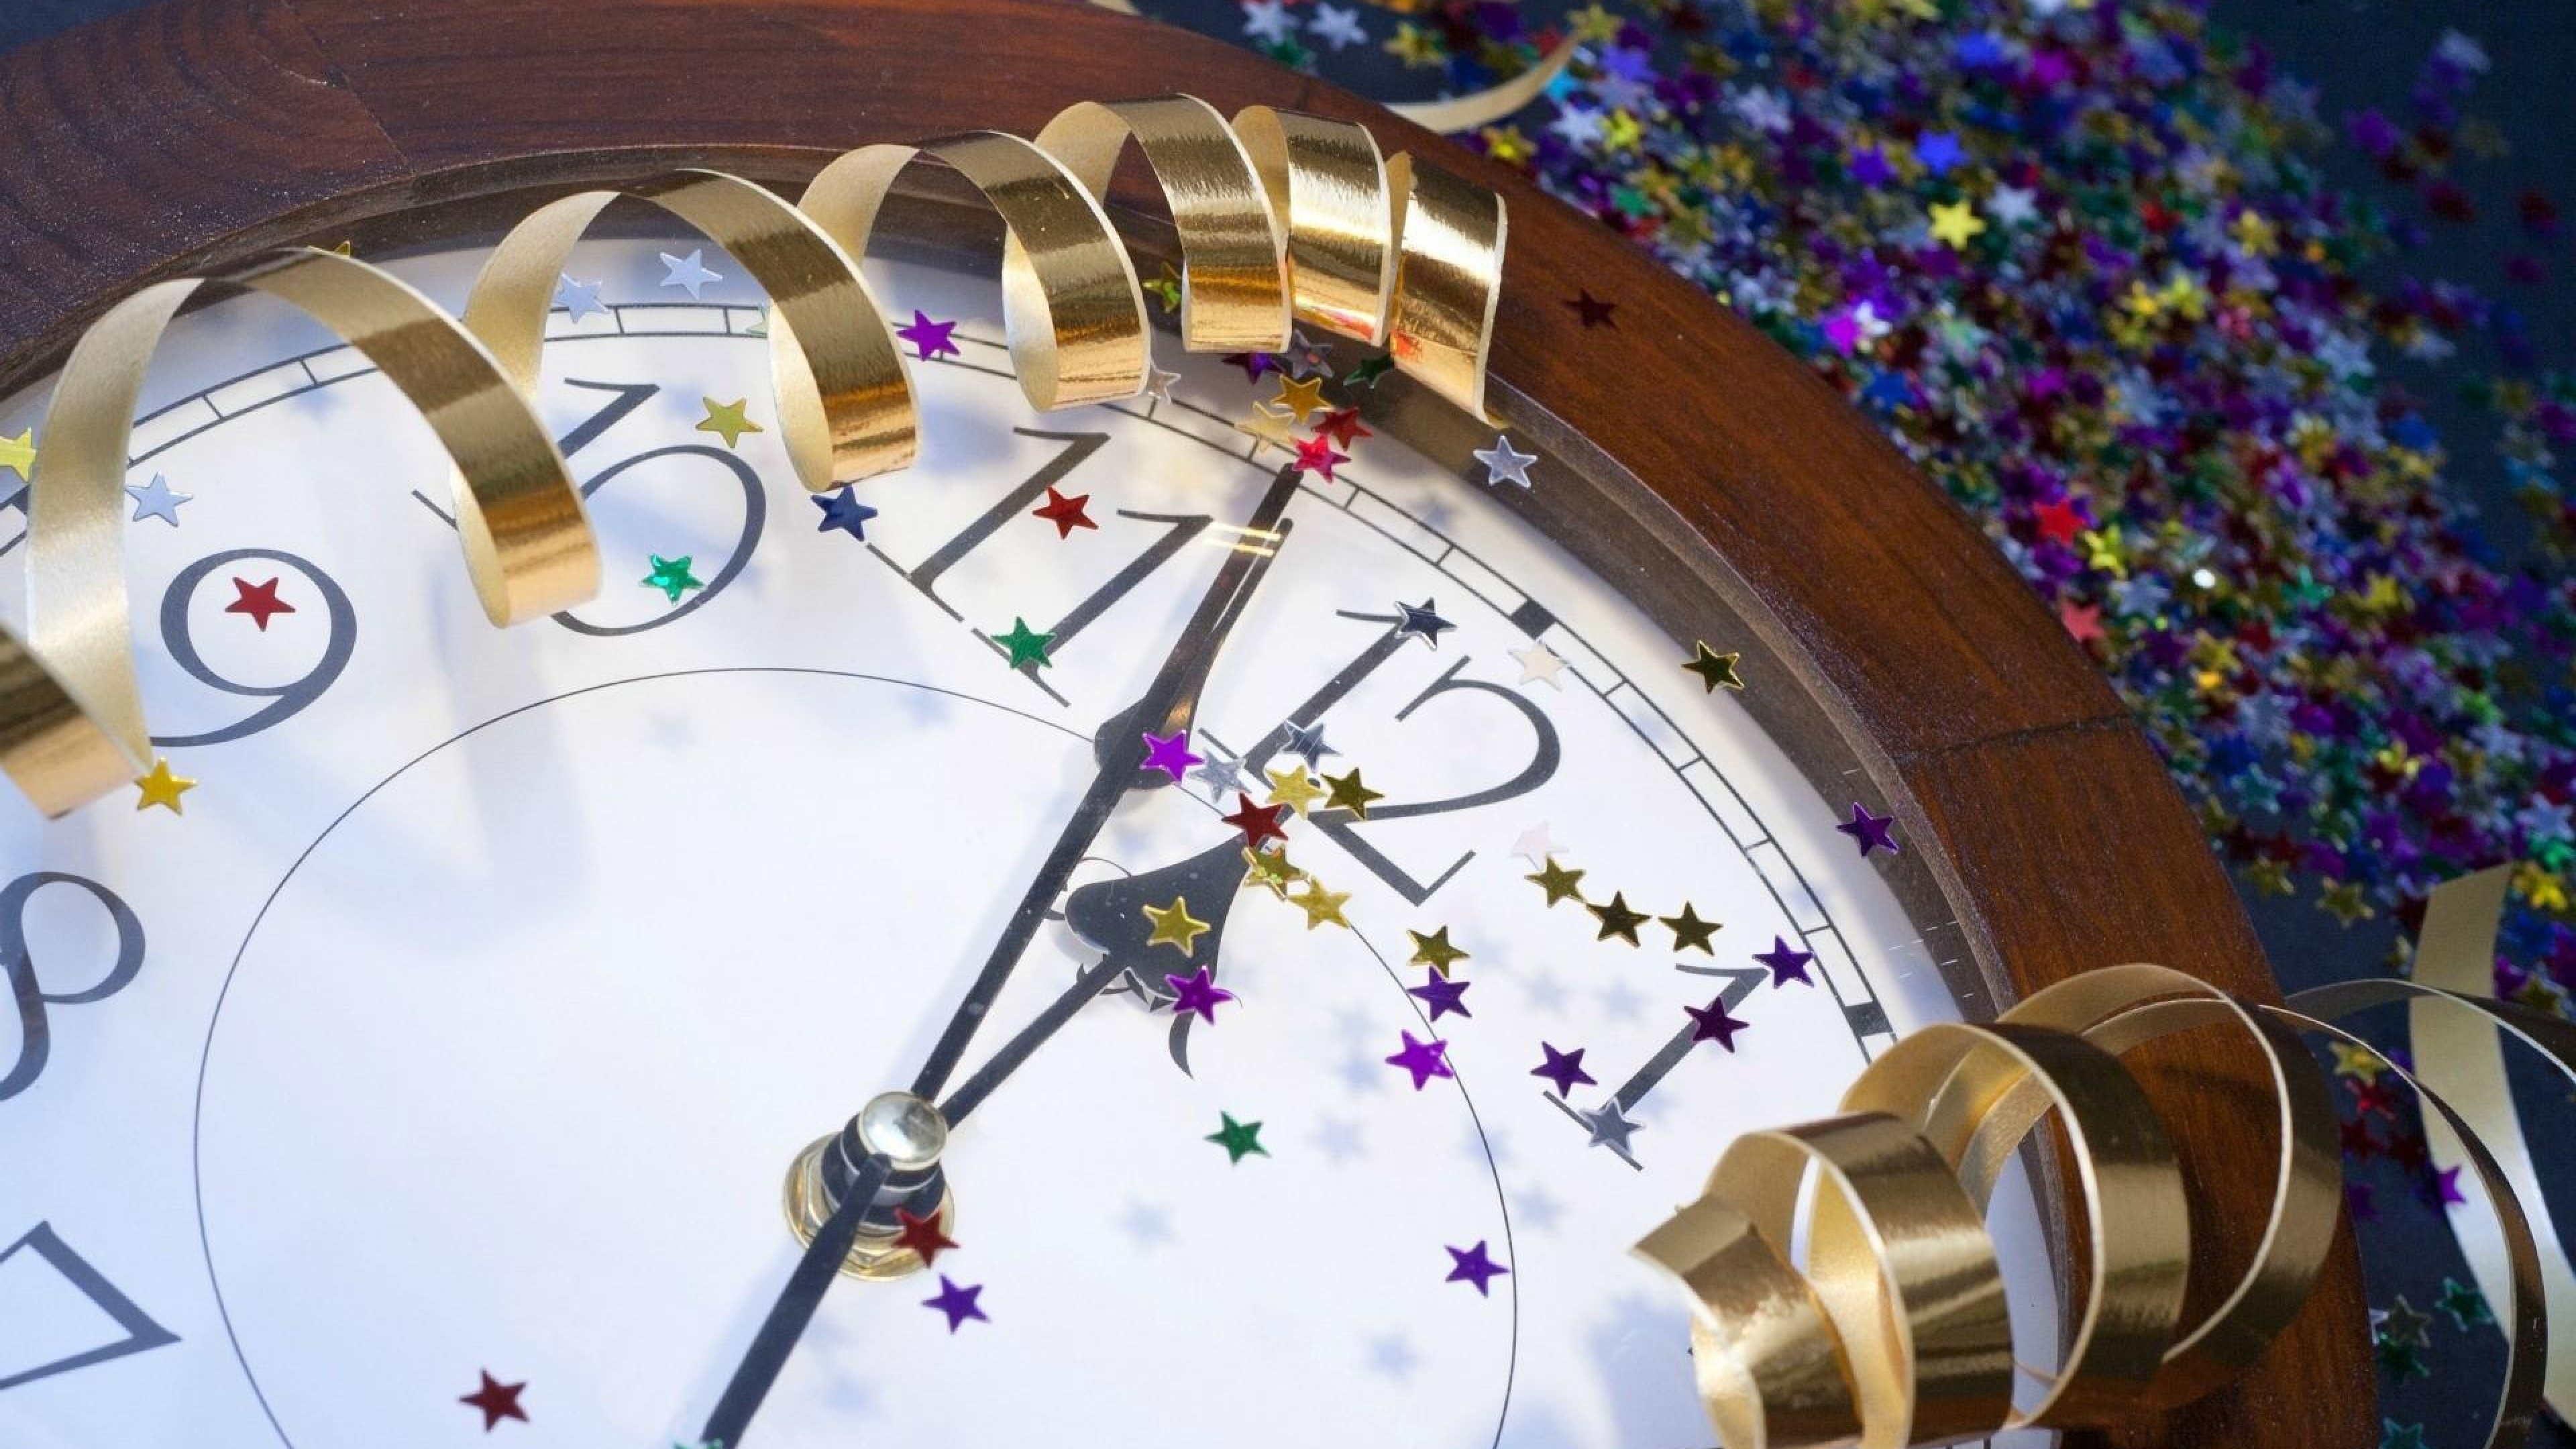 New year clock wallpaper   HD Wallpapers 3840x2160